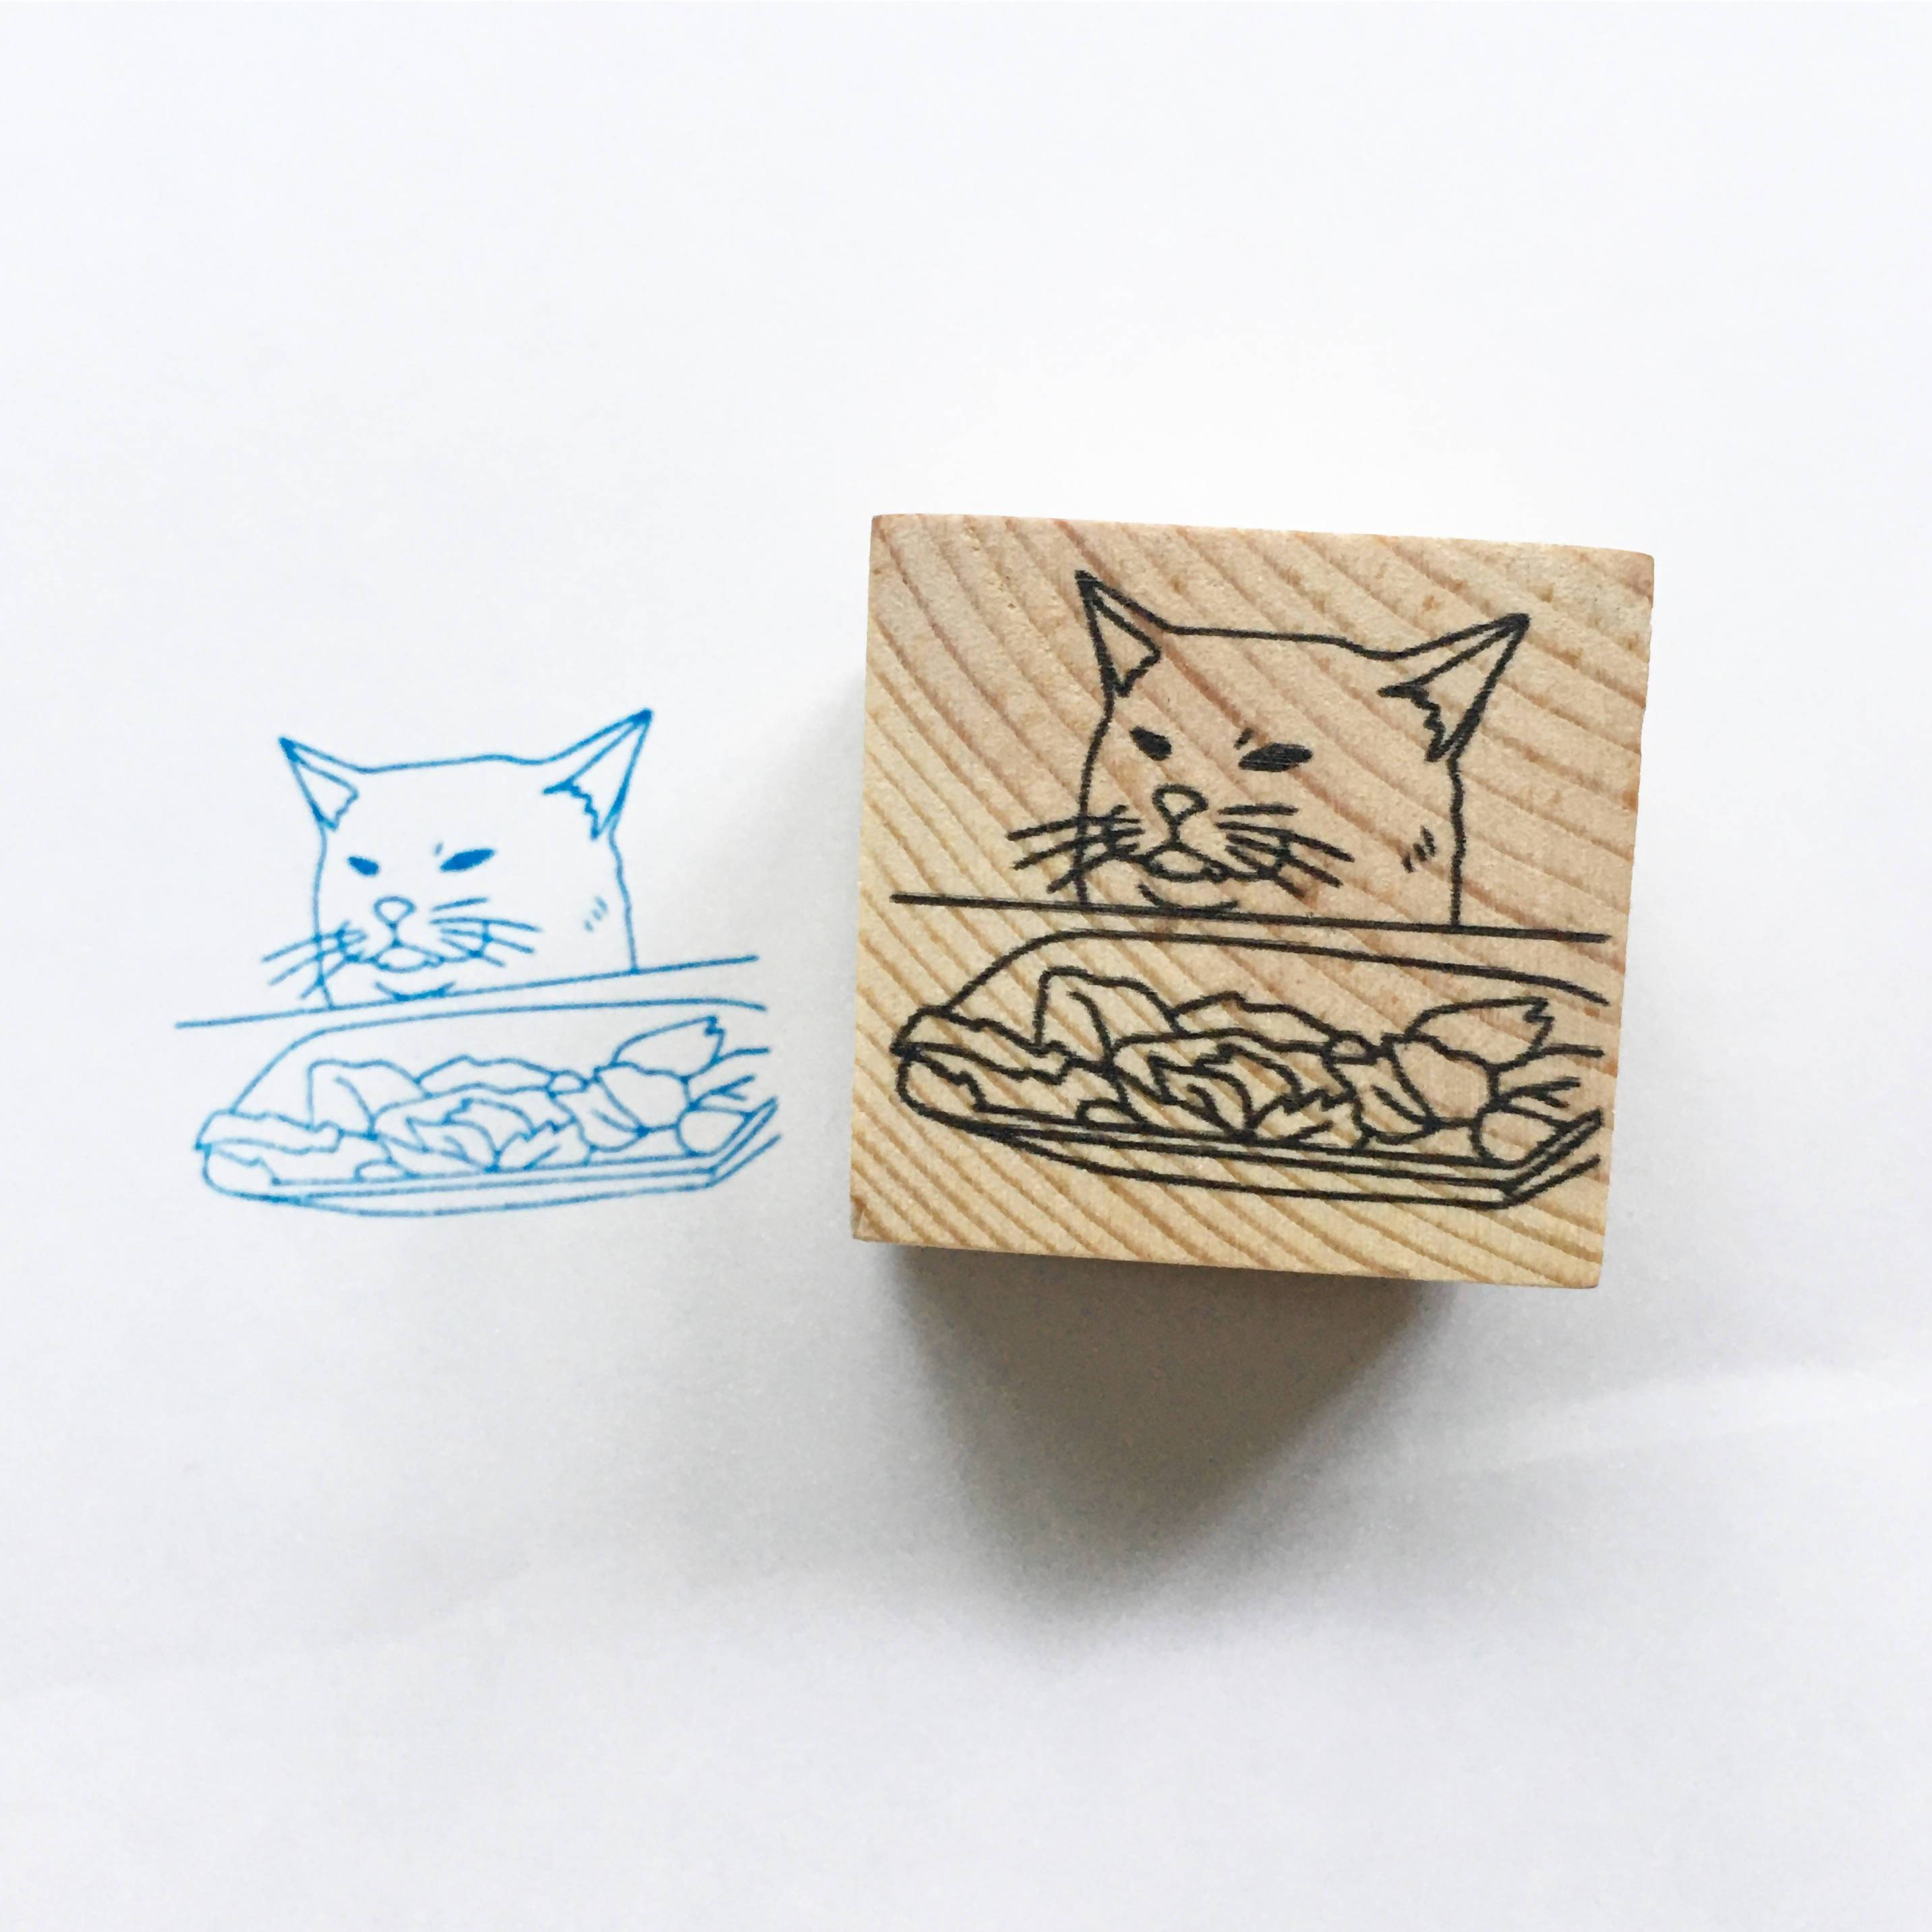 Angry Woman VS Cat Do Not Bend - Funny Clear Jelly Rubber Stamp - Rubber Stamps - Ping Hatta. Studio - Naiise